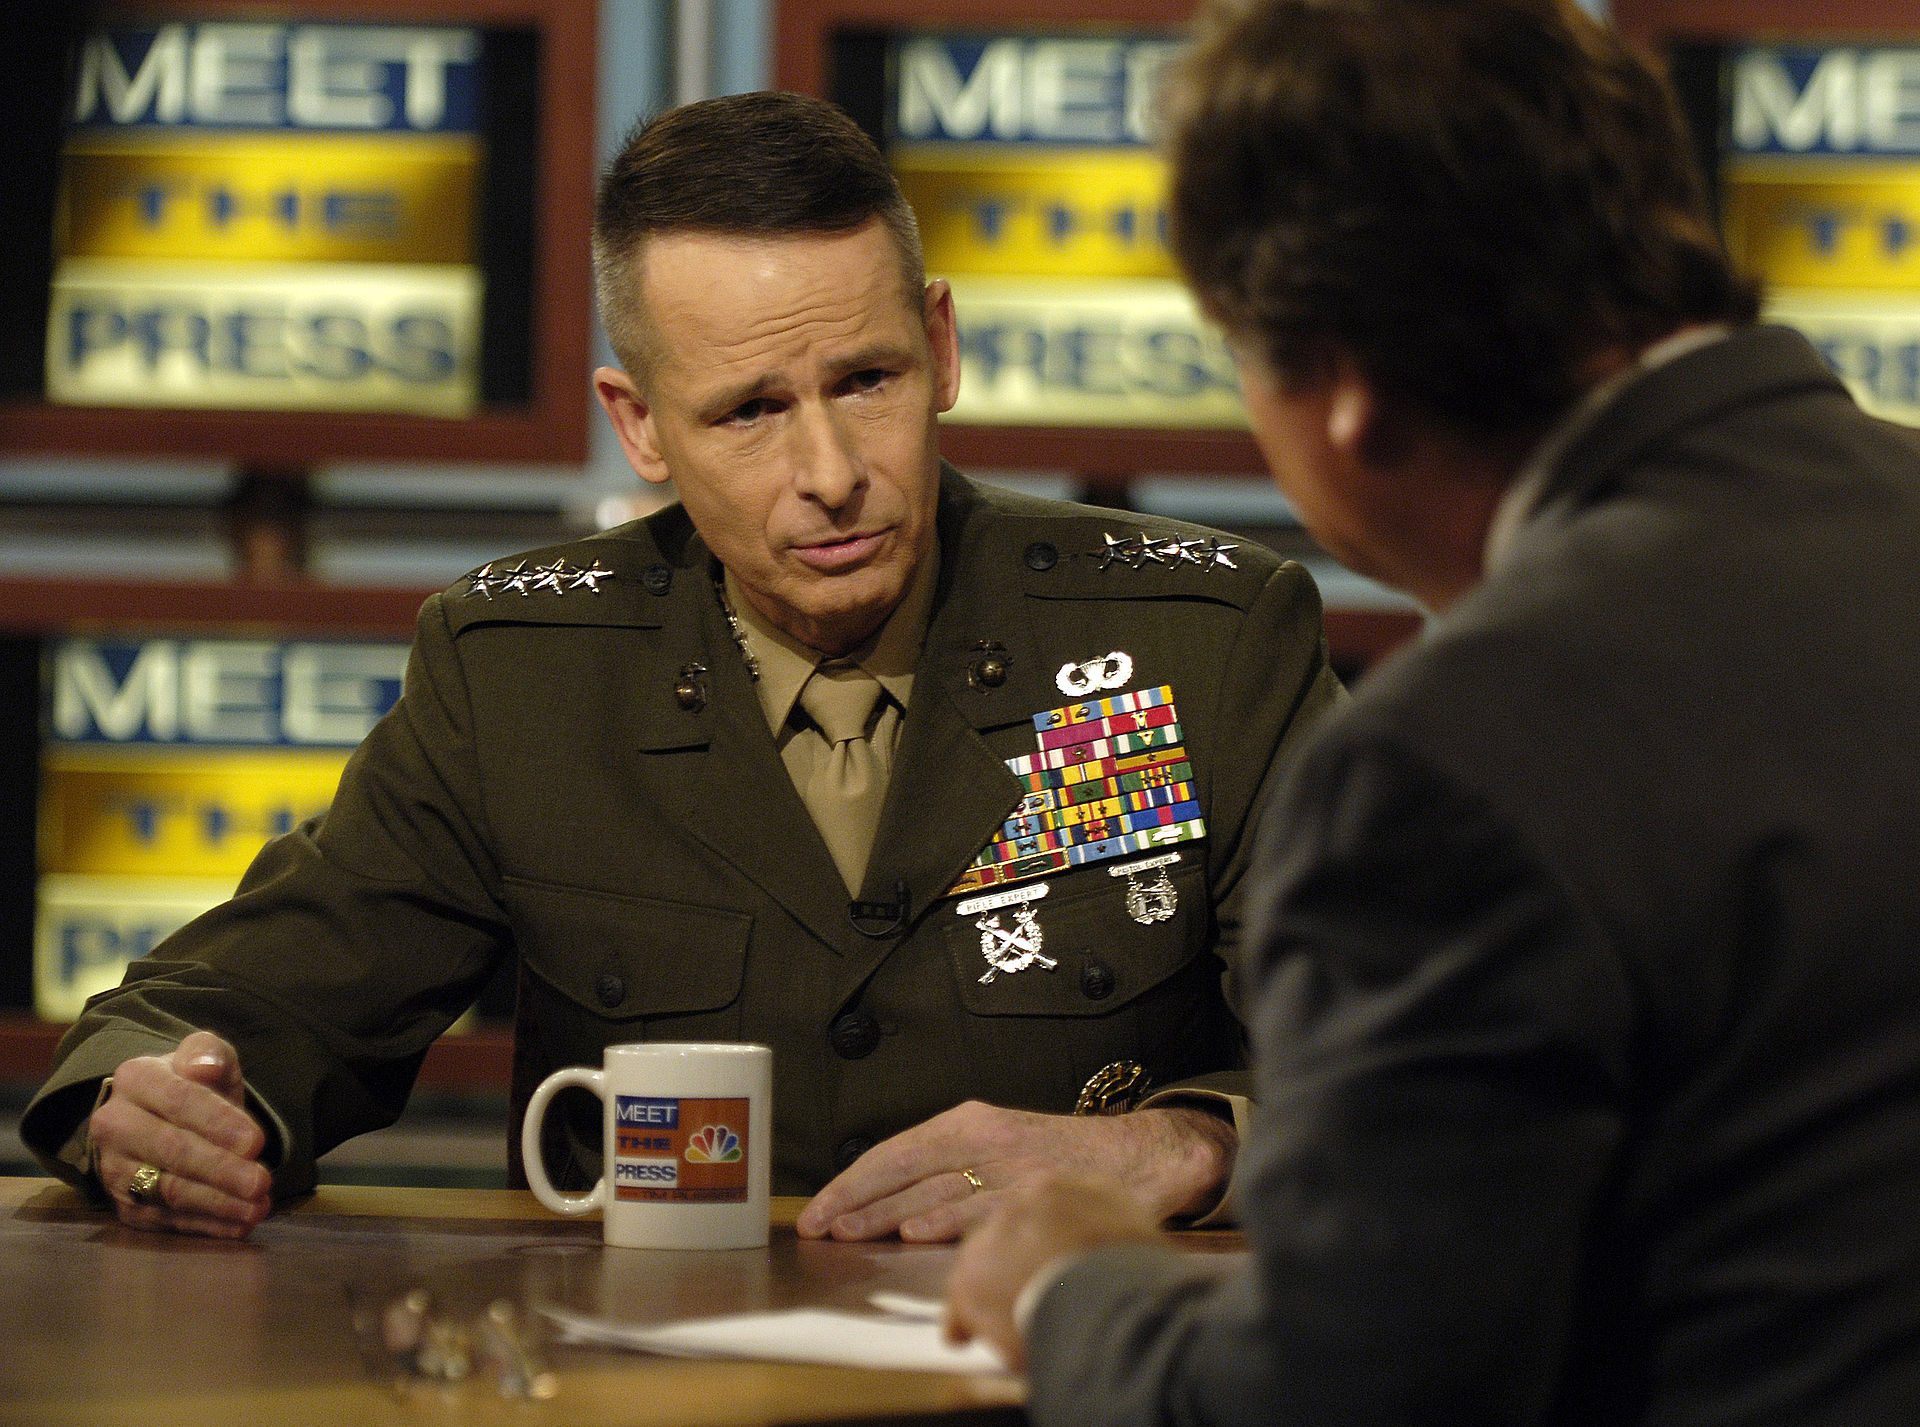 Russert interviews General Peter Pace in 2006.